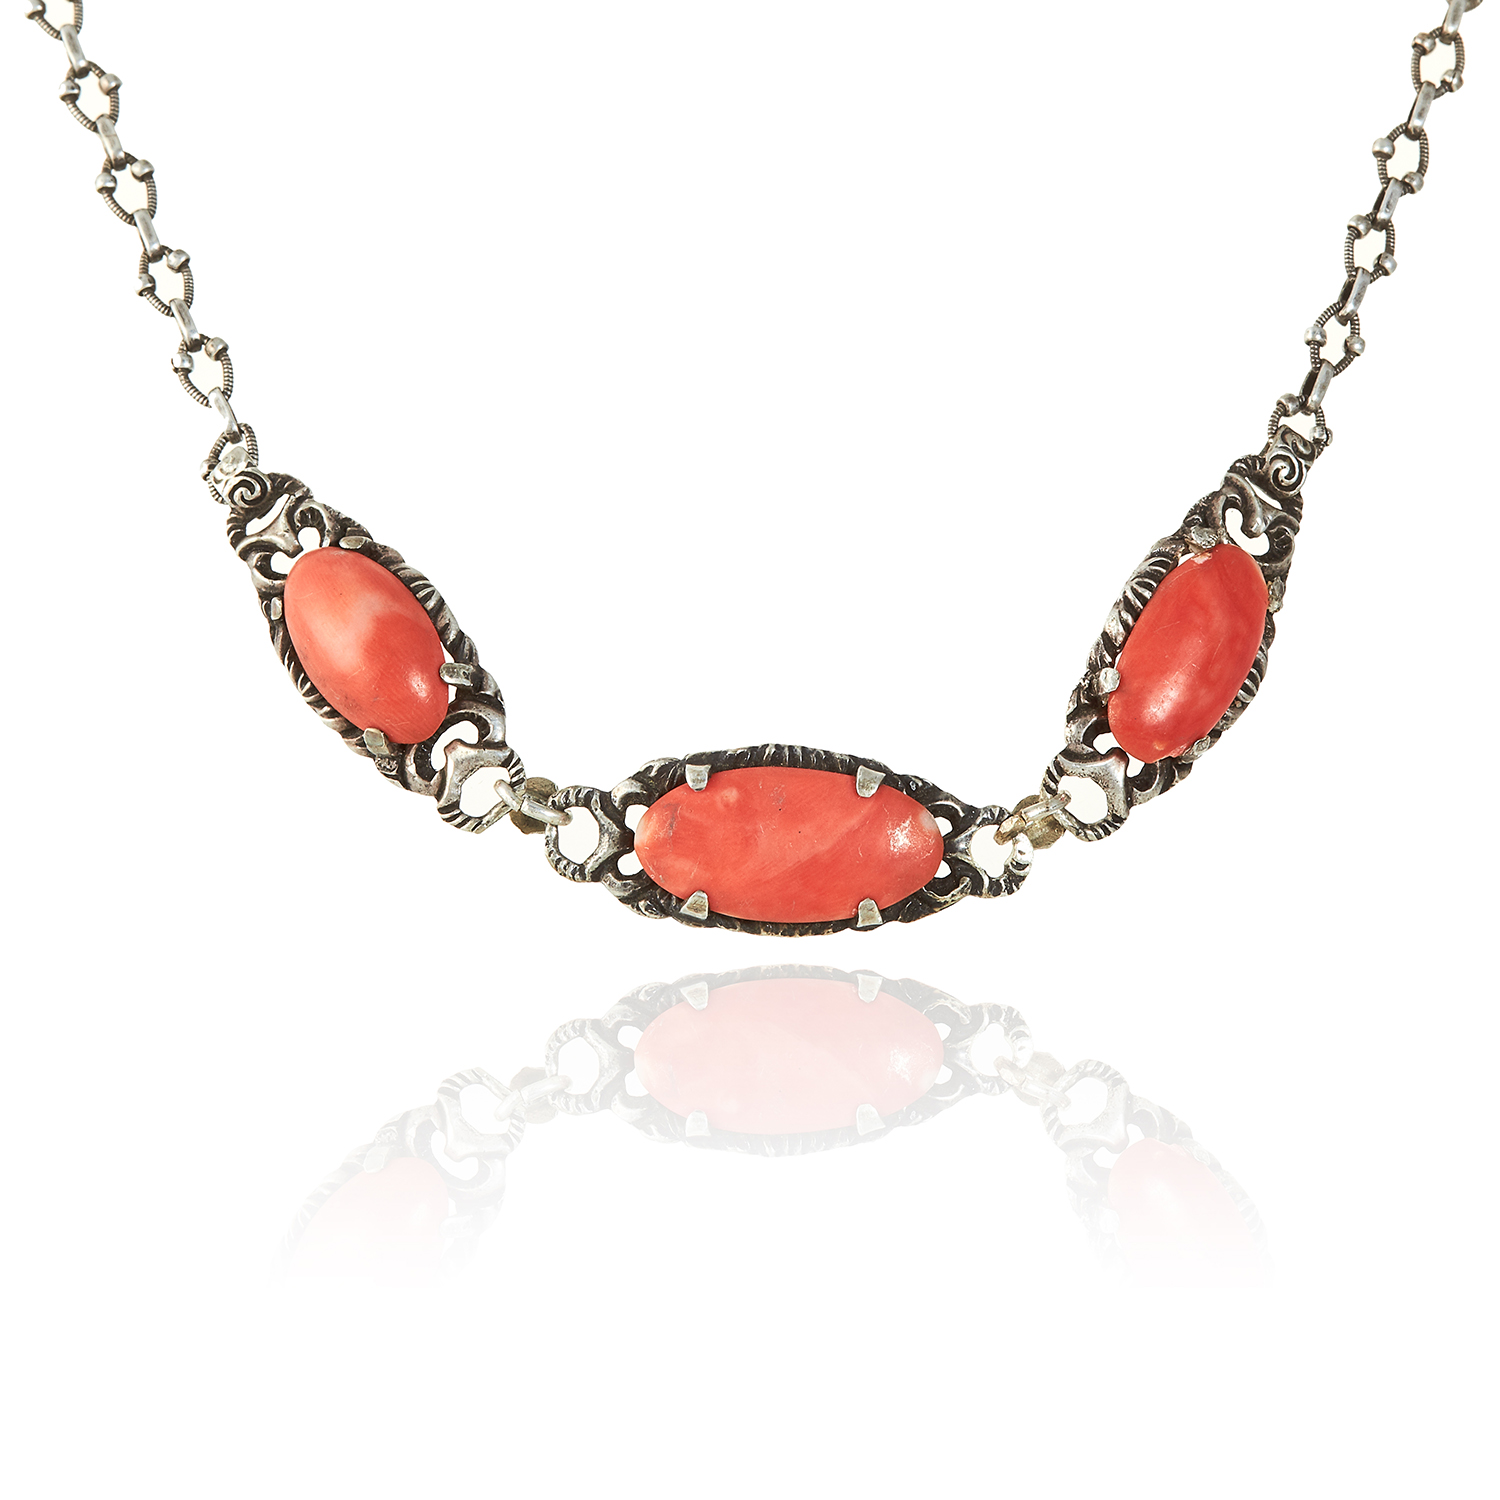 Los 344 - A CORAL NECKLACE in sterling silver, the three coral cabochons within foliate surrounds, unmarked,